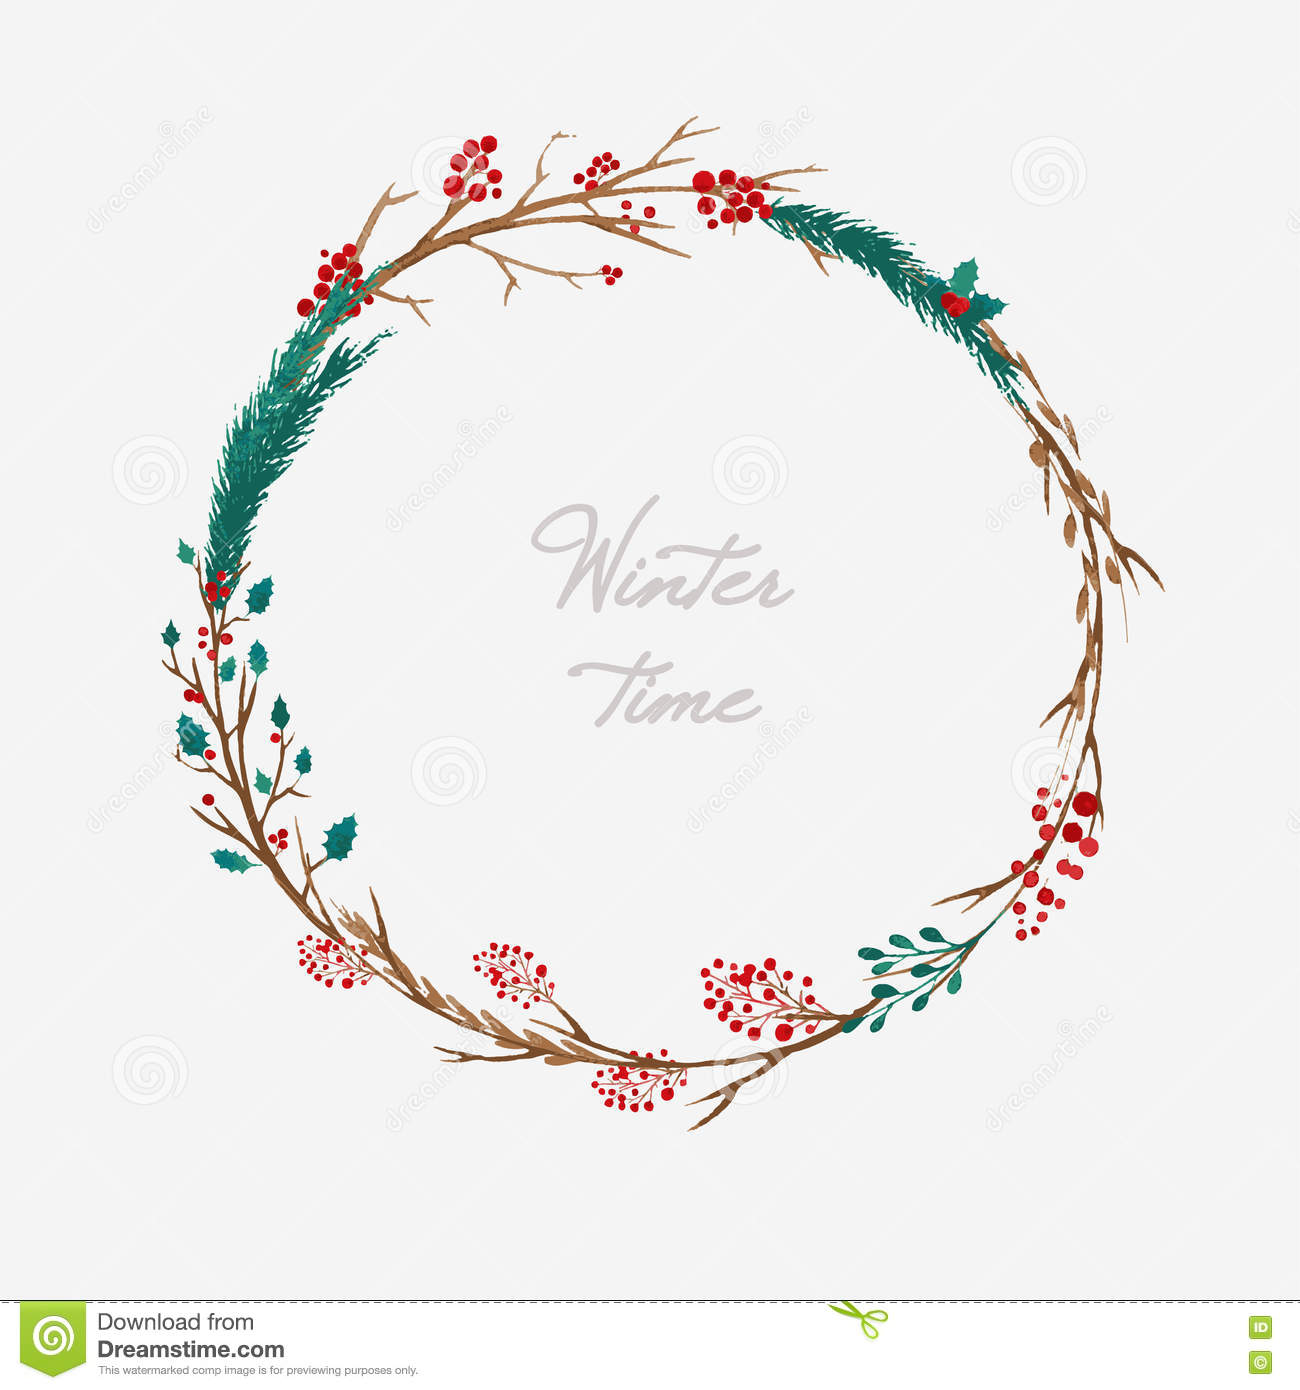 Christmas Wreath Vector.Watercolor Christmas Wreath Stock Vector Illustration Of